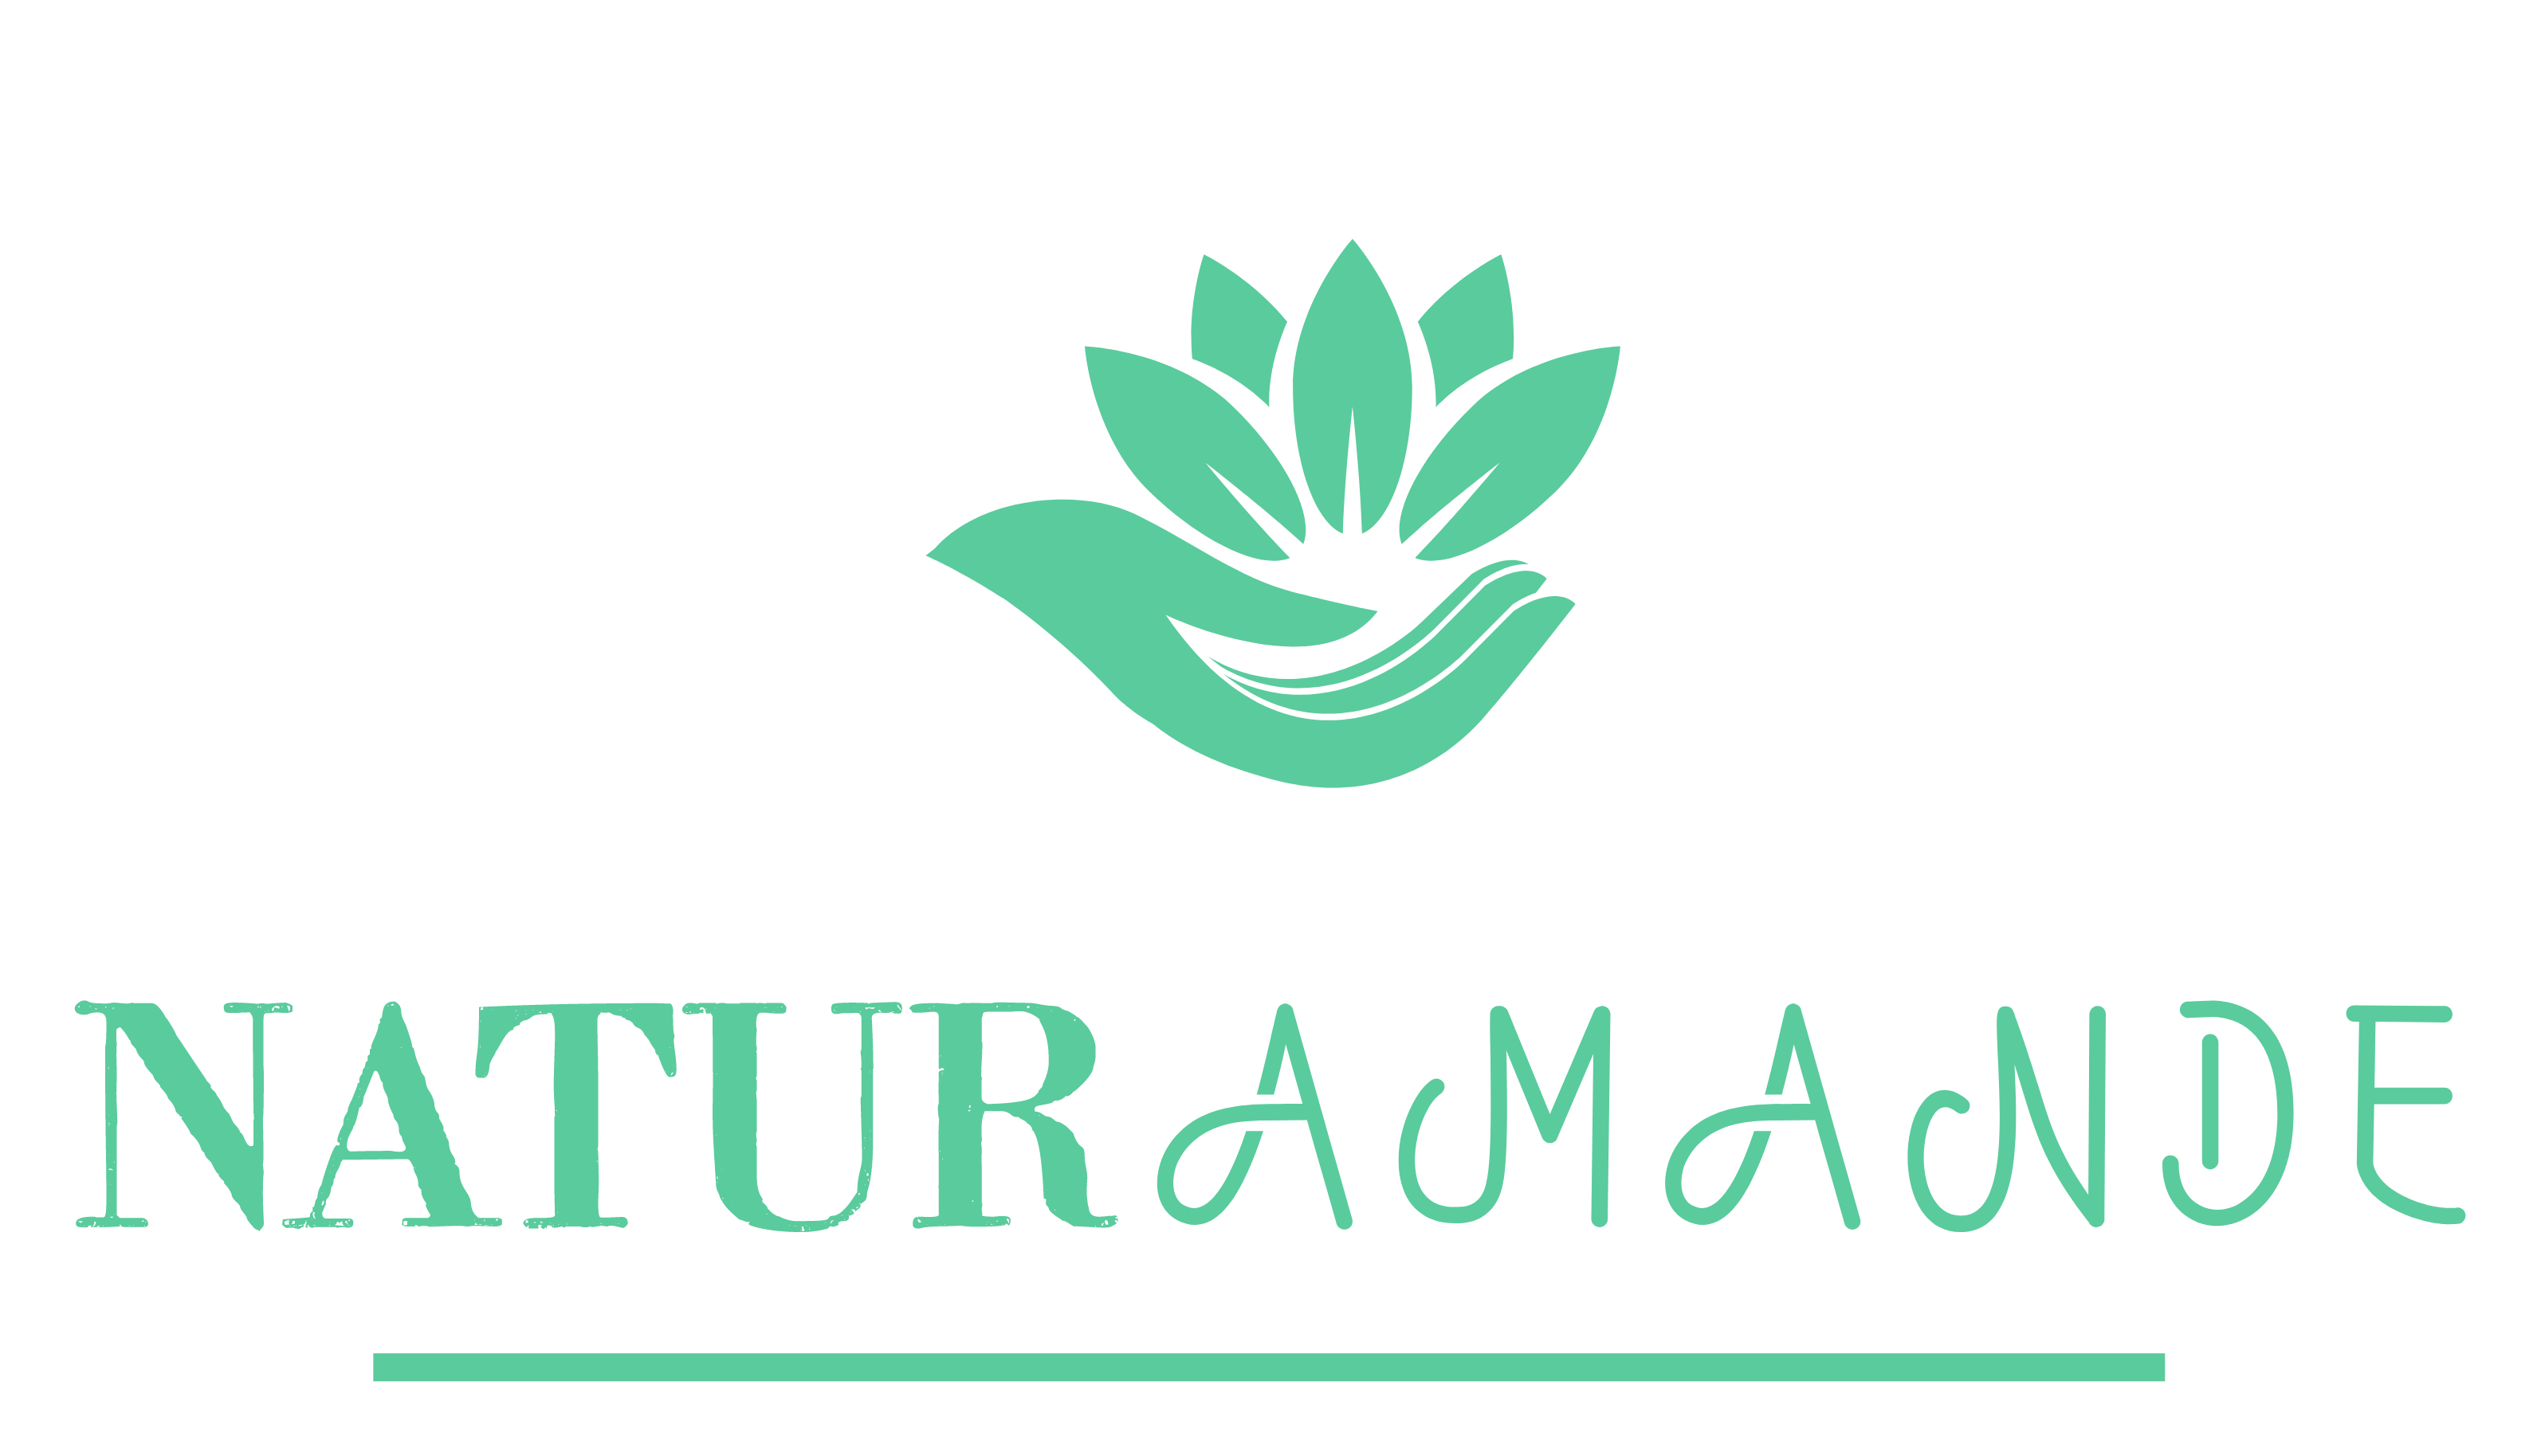 Amandine Guyot Naturopathe Iridologue Masseuse